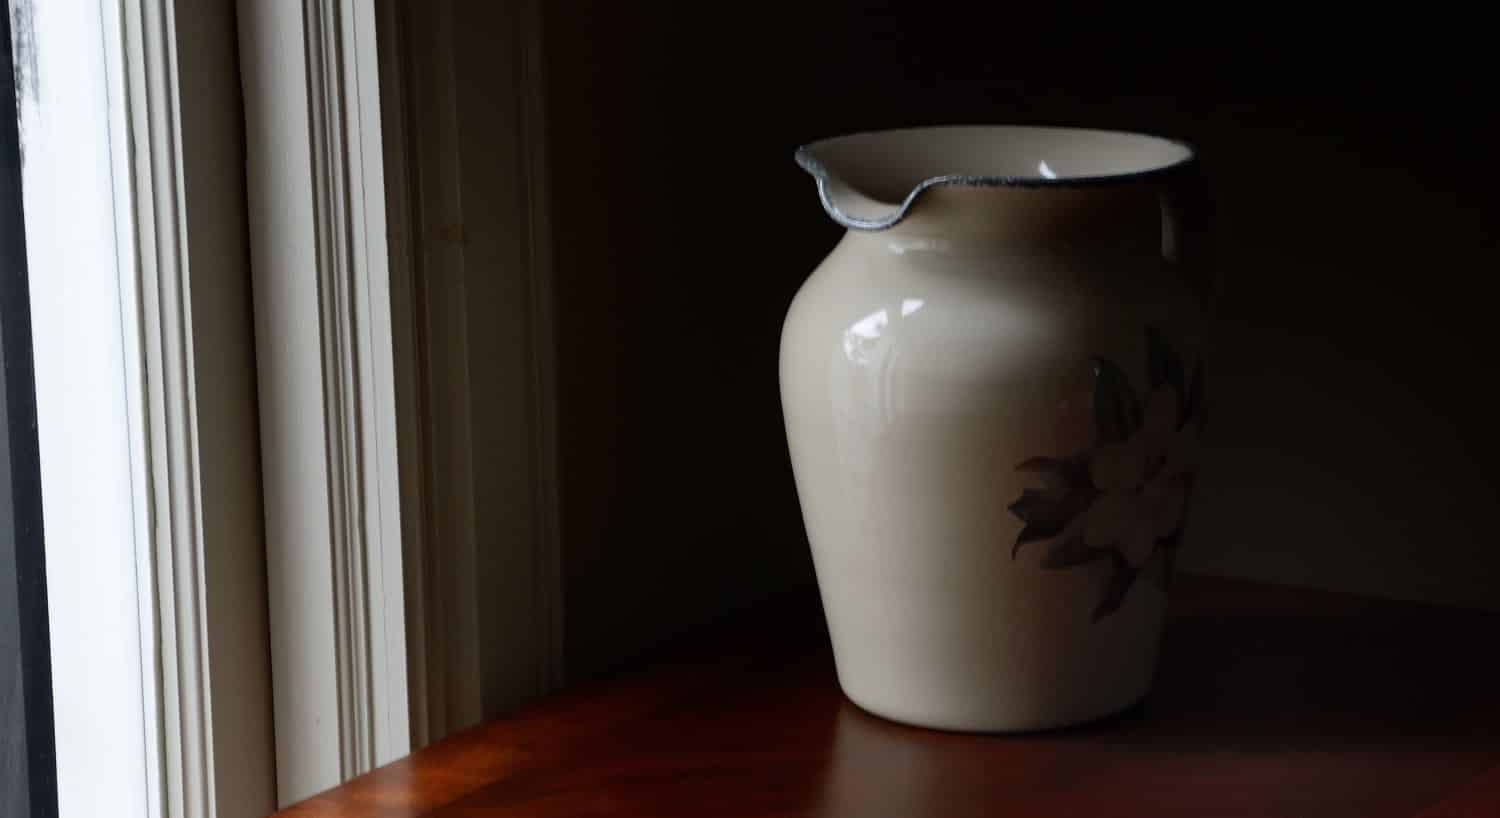 Large white vase sitting on a wood table next to a window